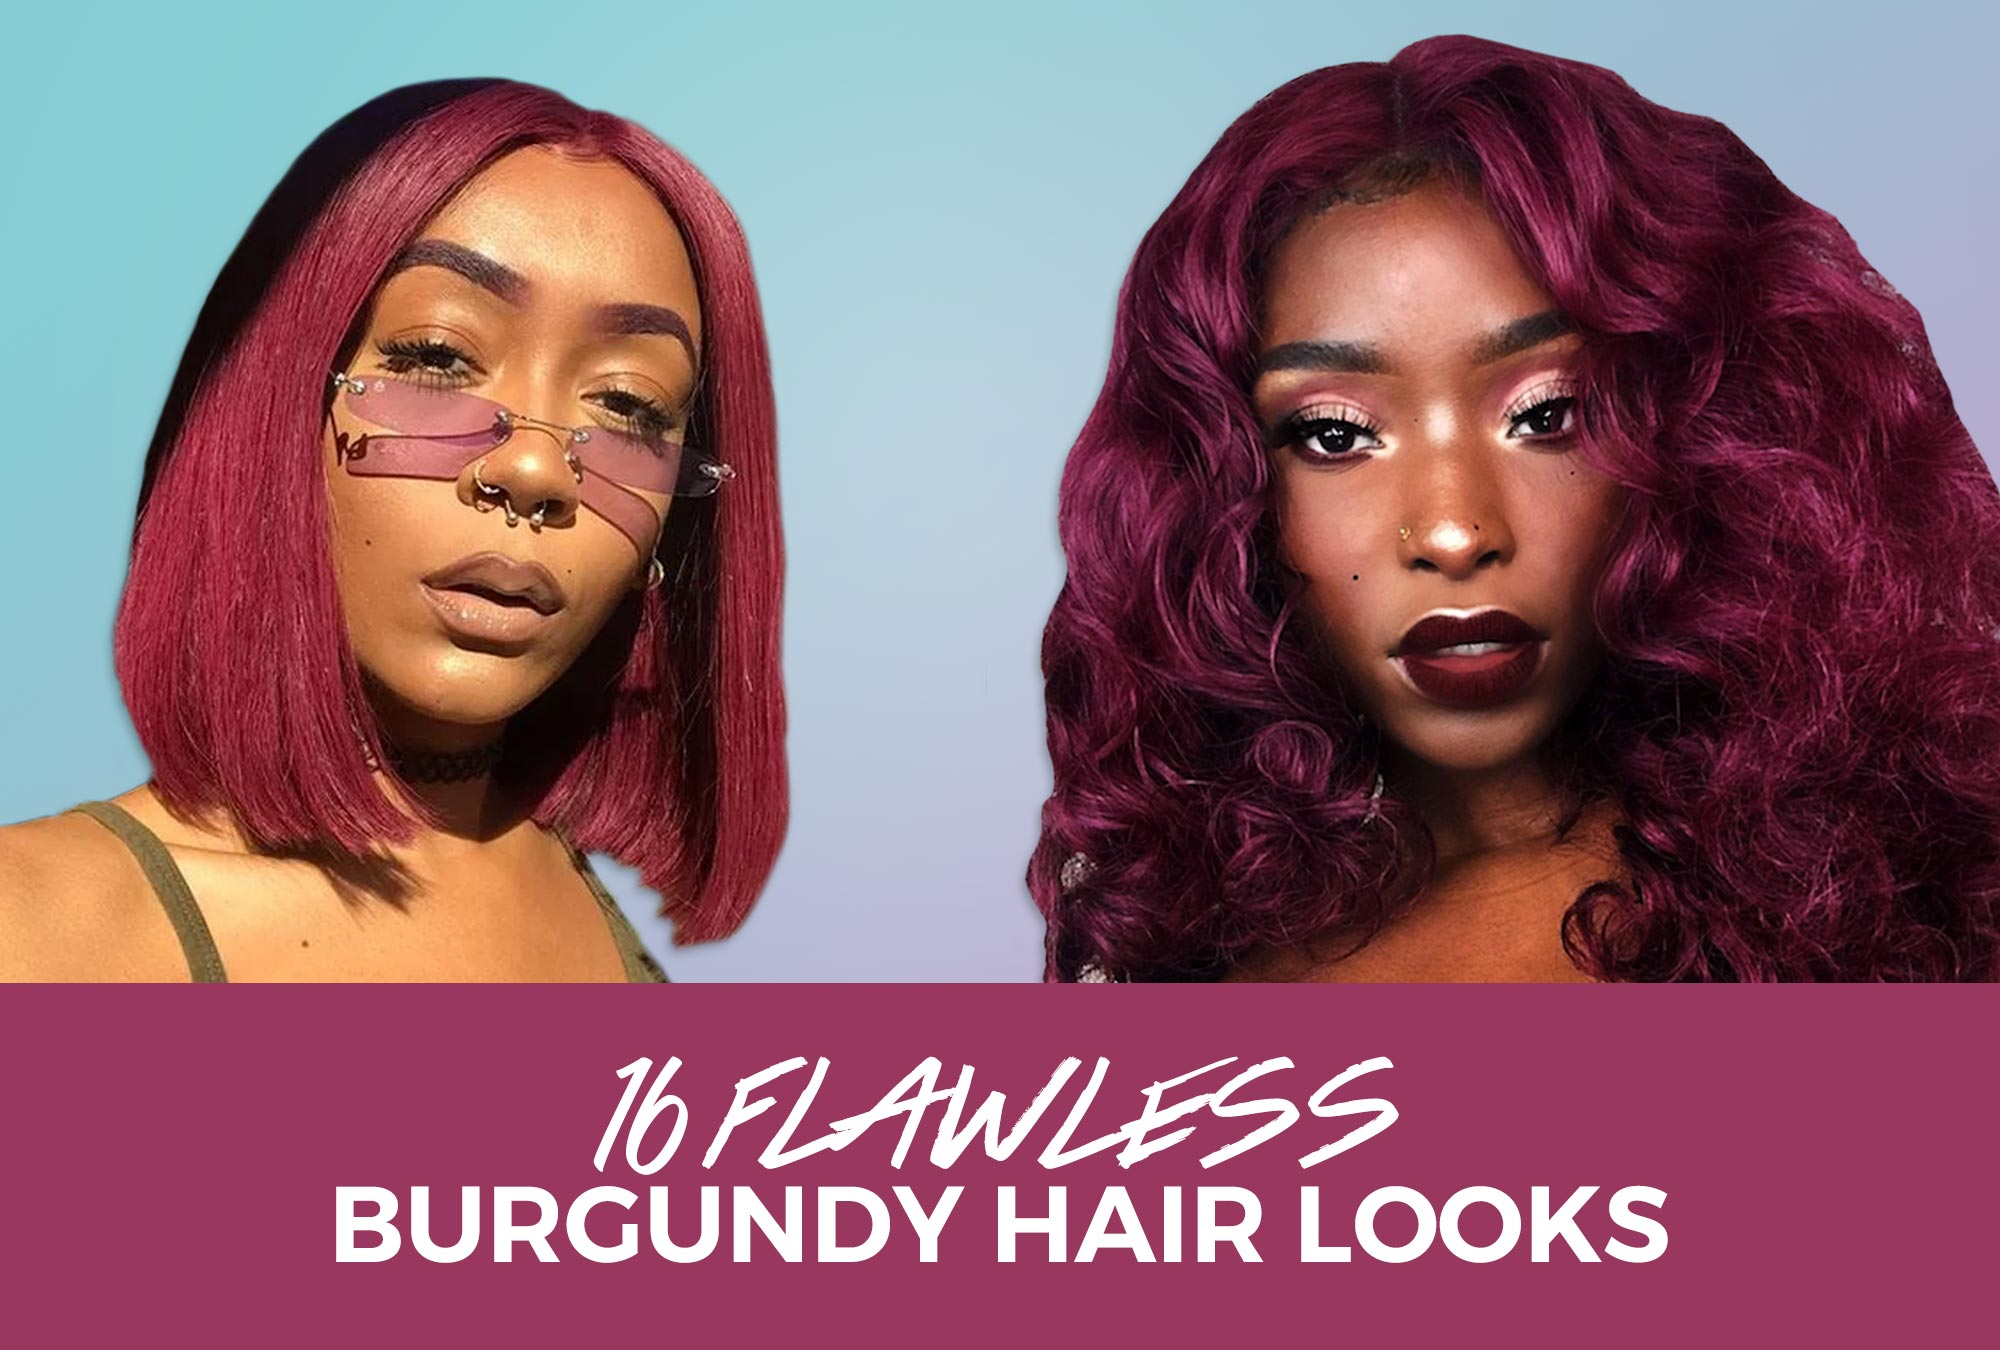 Think You Can't Rock Burgundy Hair? Think Again